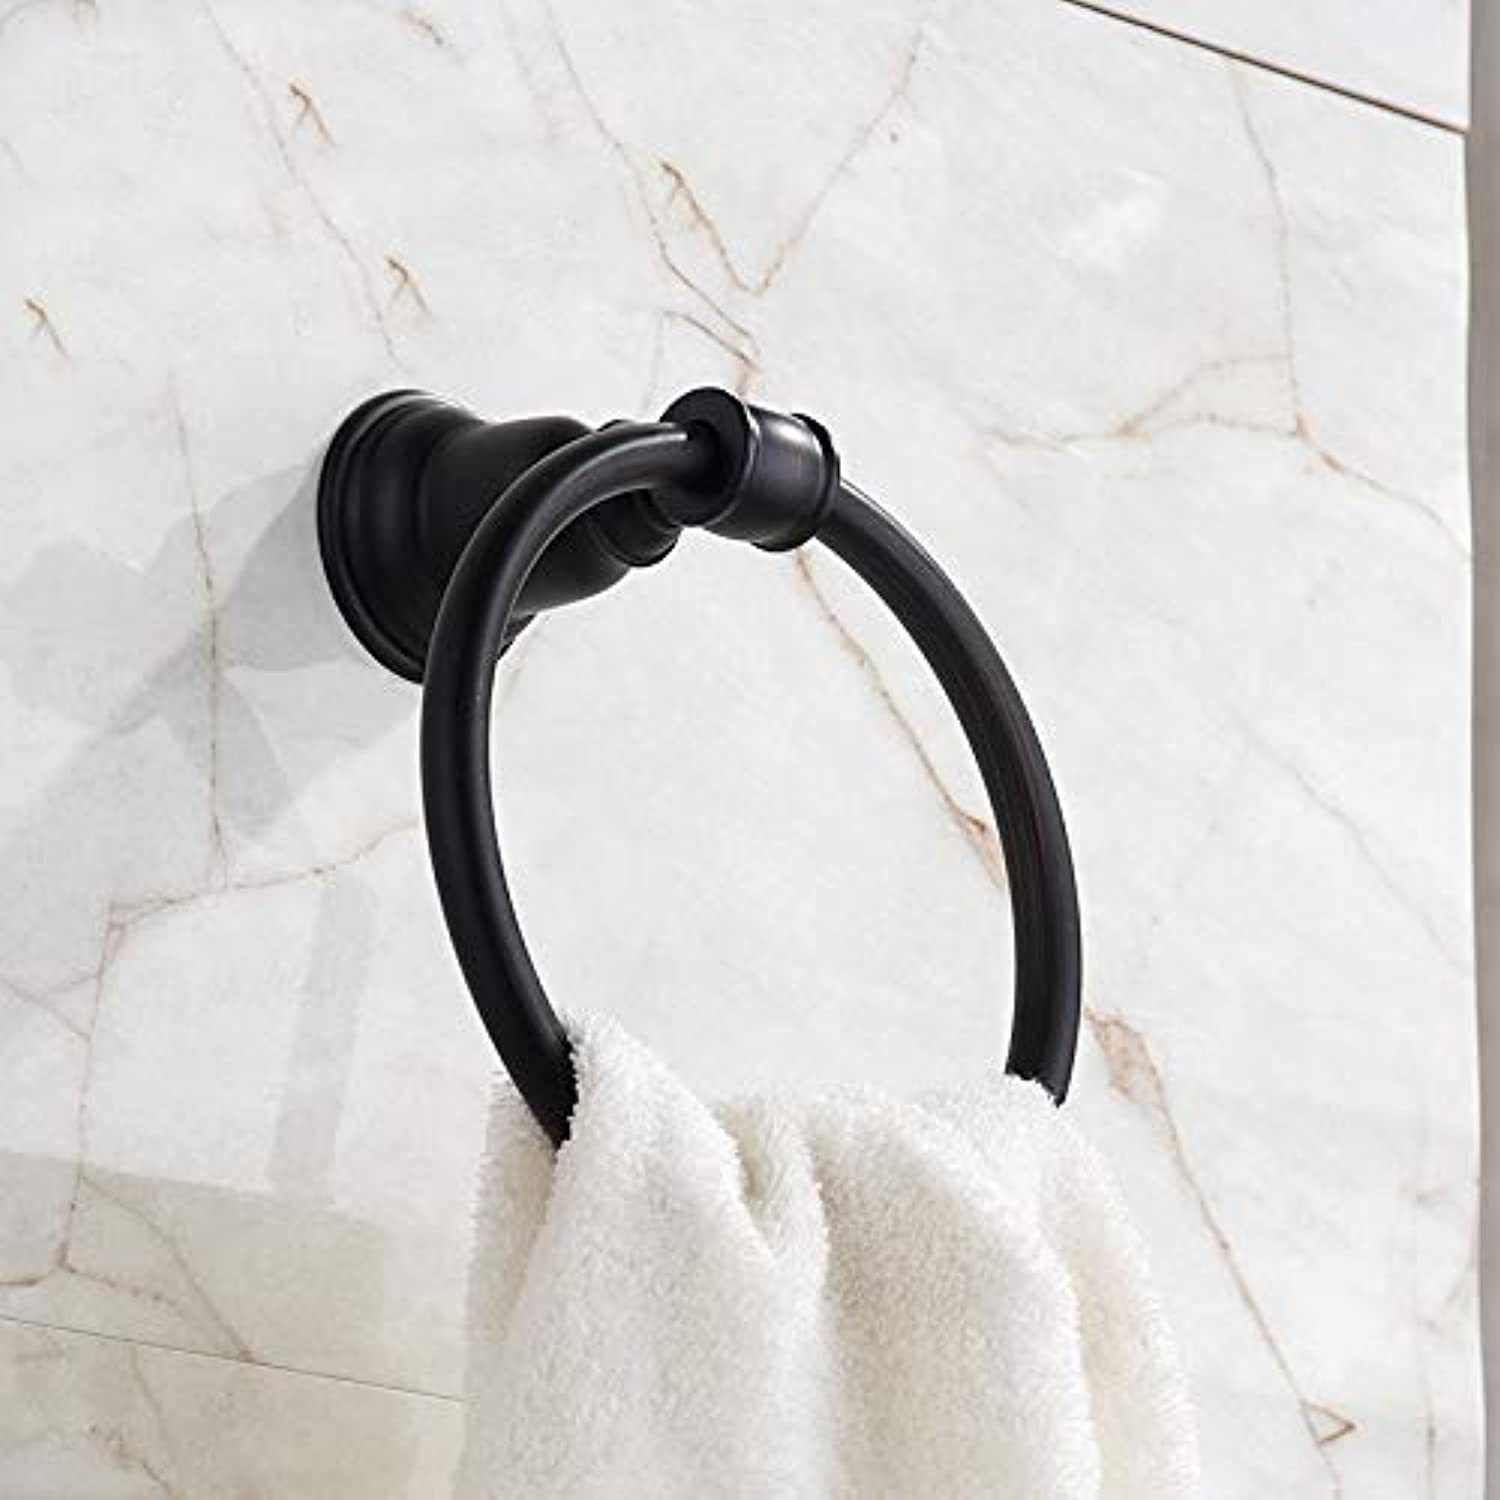 Towel Rack Towel Holder Hand Towel Ring Hanging Towel Hanger Towel Stands Stainless Steel Shelf Bathroom Towel Shelf